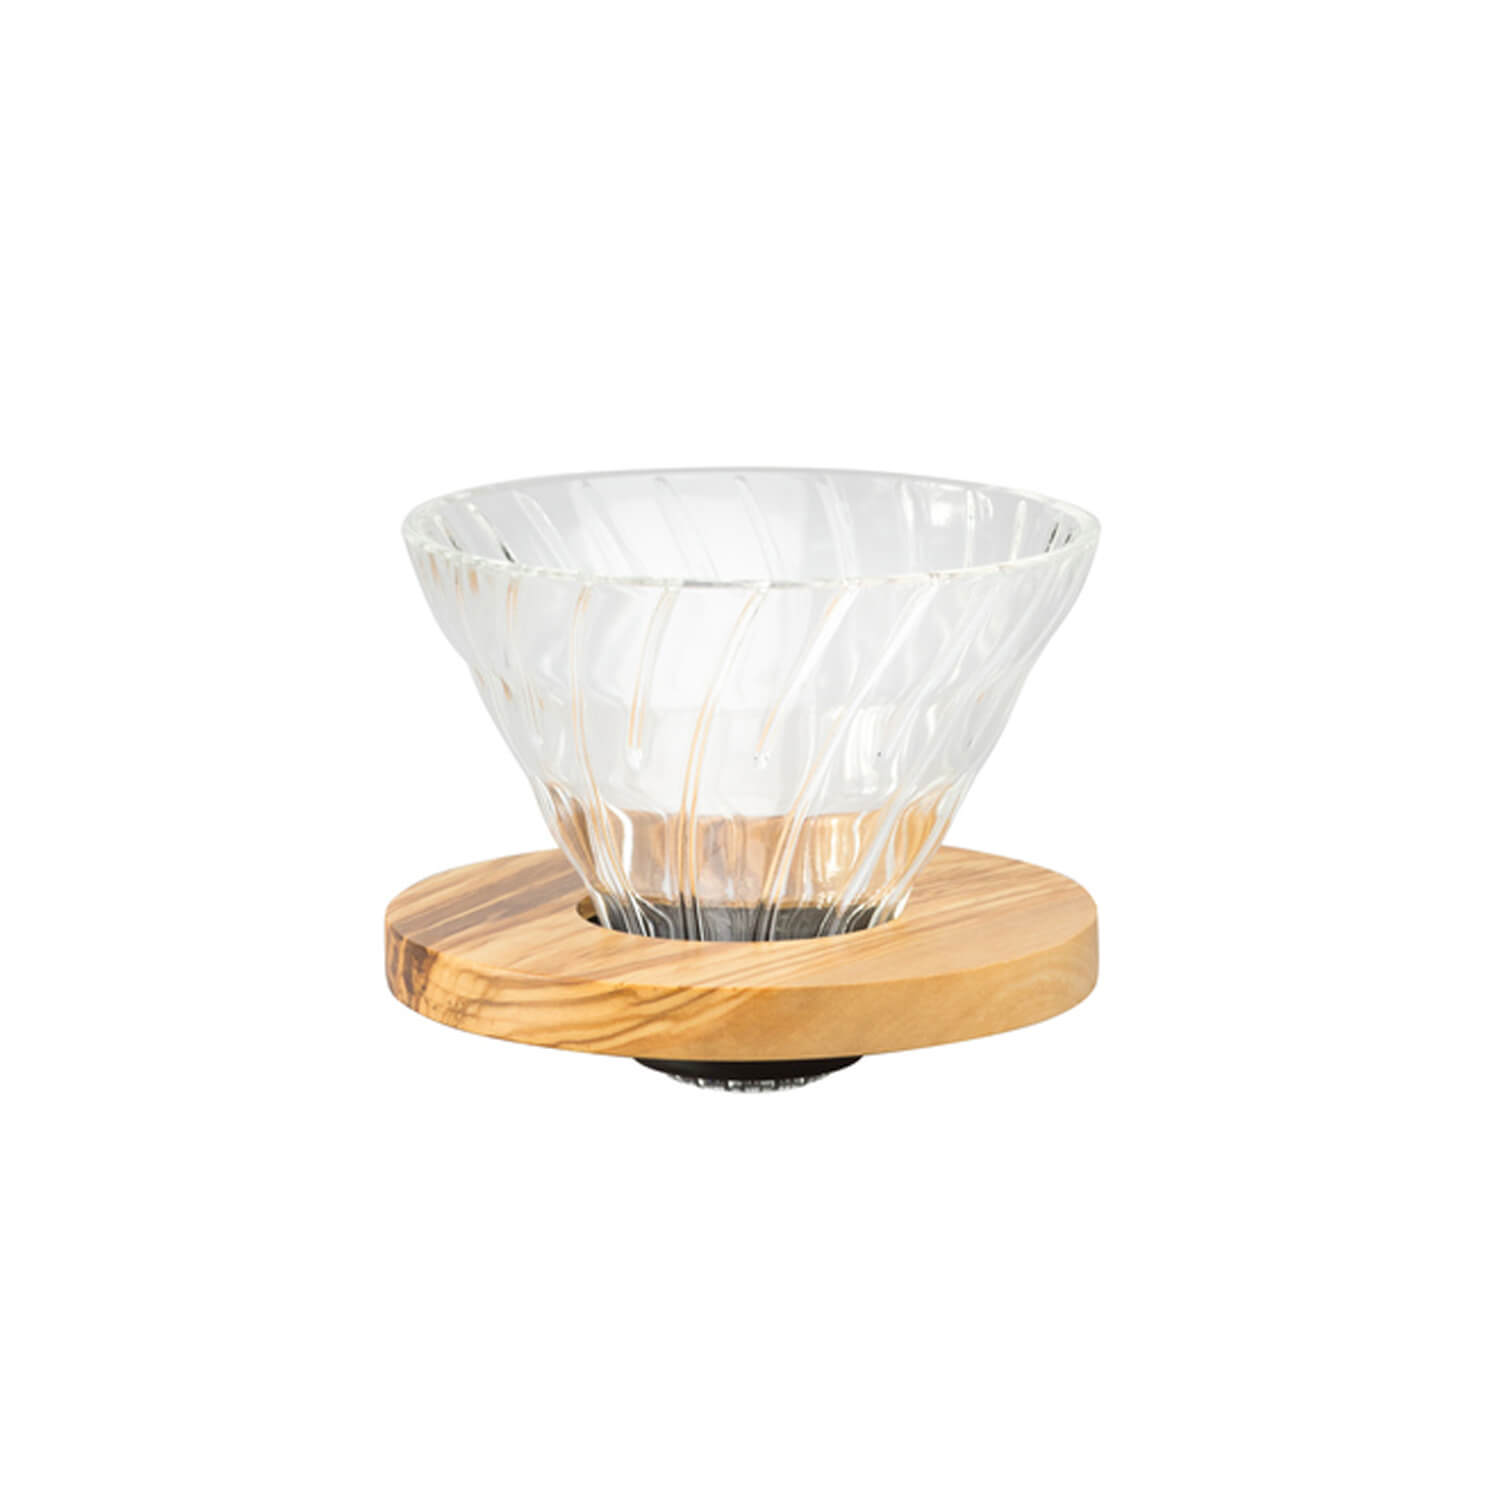 Hario - Dripper V60 - 02 - Olive Wood